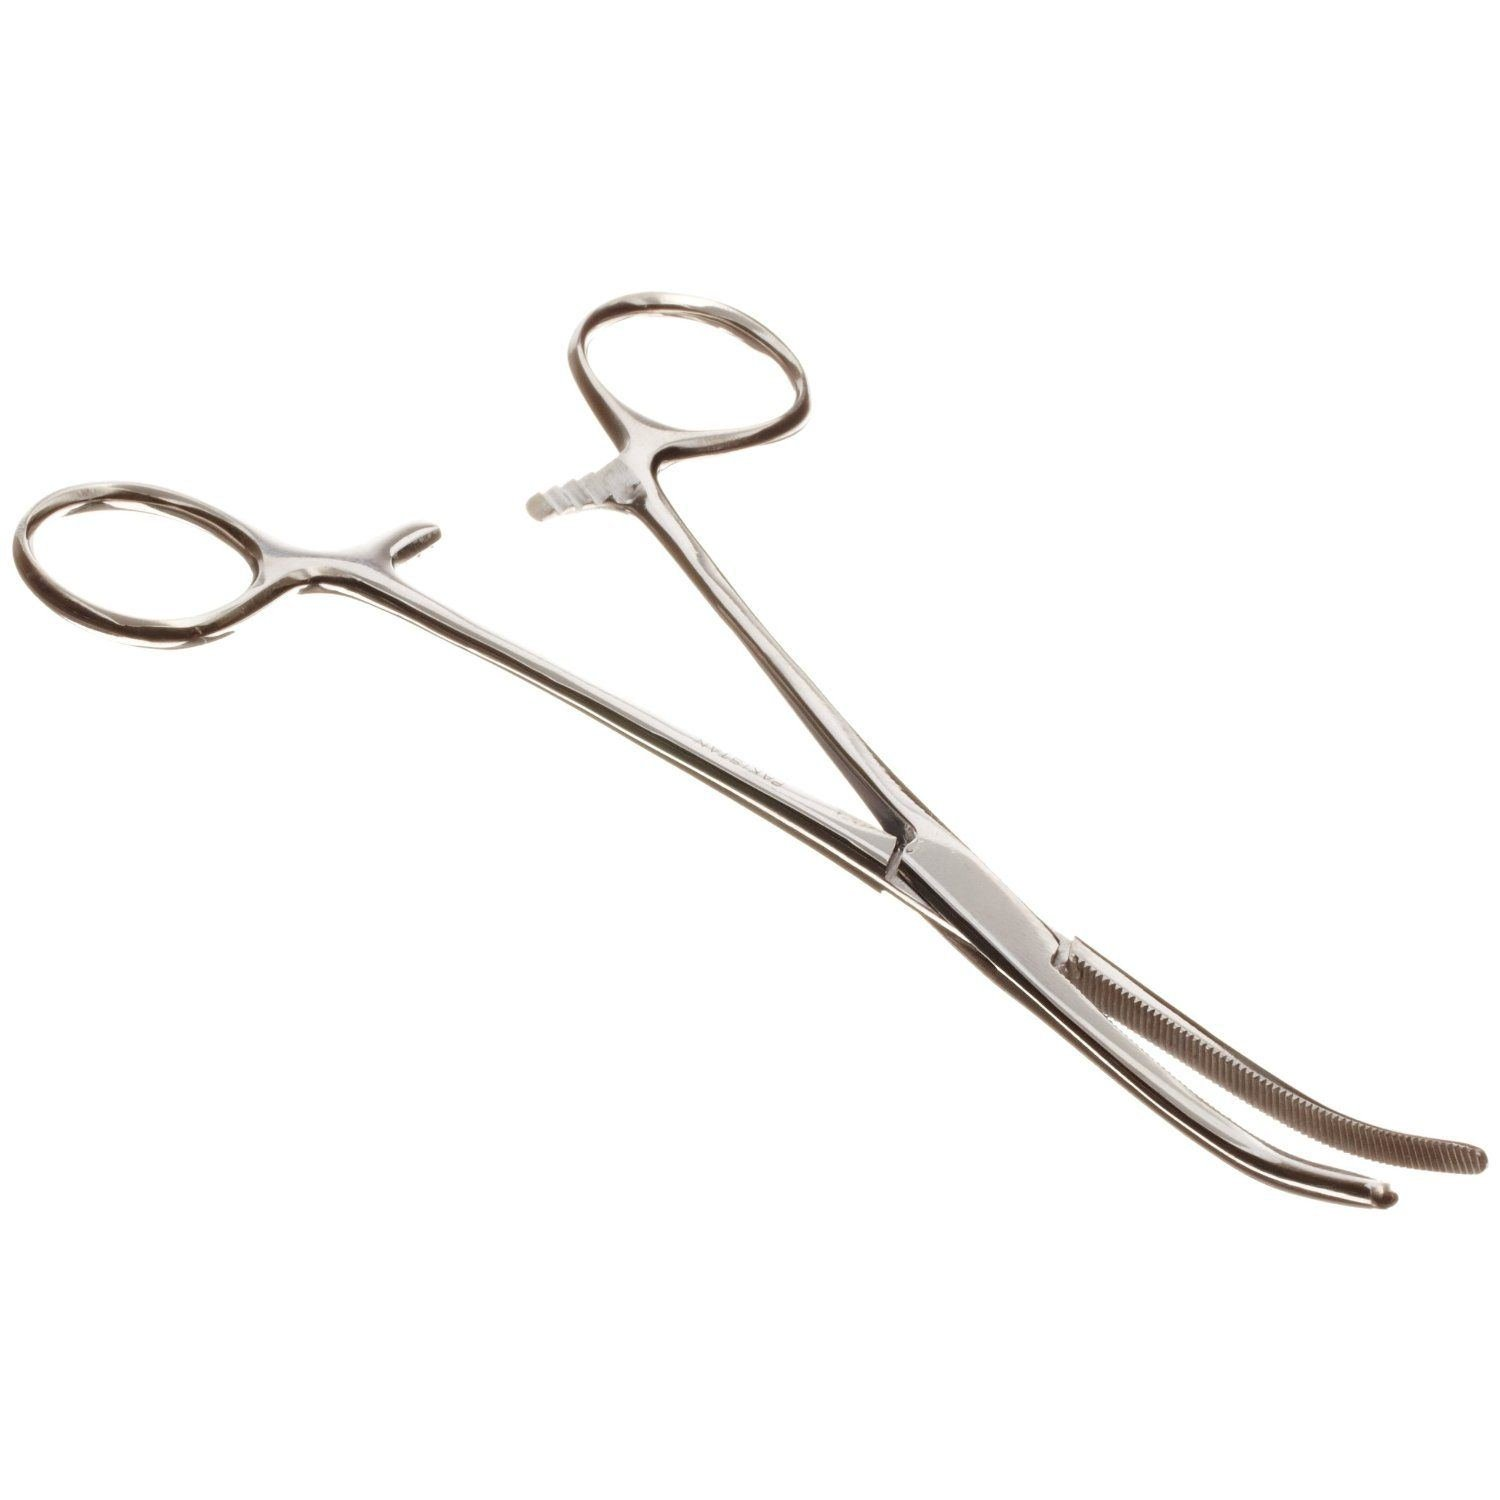 Set of 2 Pairs 8'' Curved Hemostat Forceps Locking Clamps - Stainless Steel